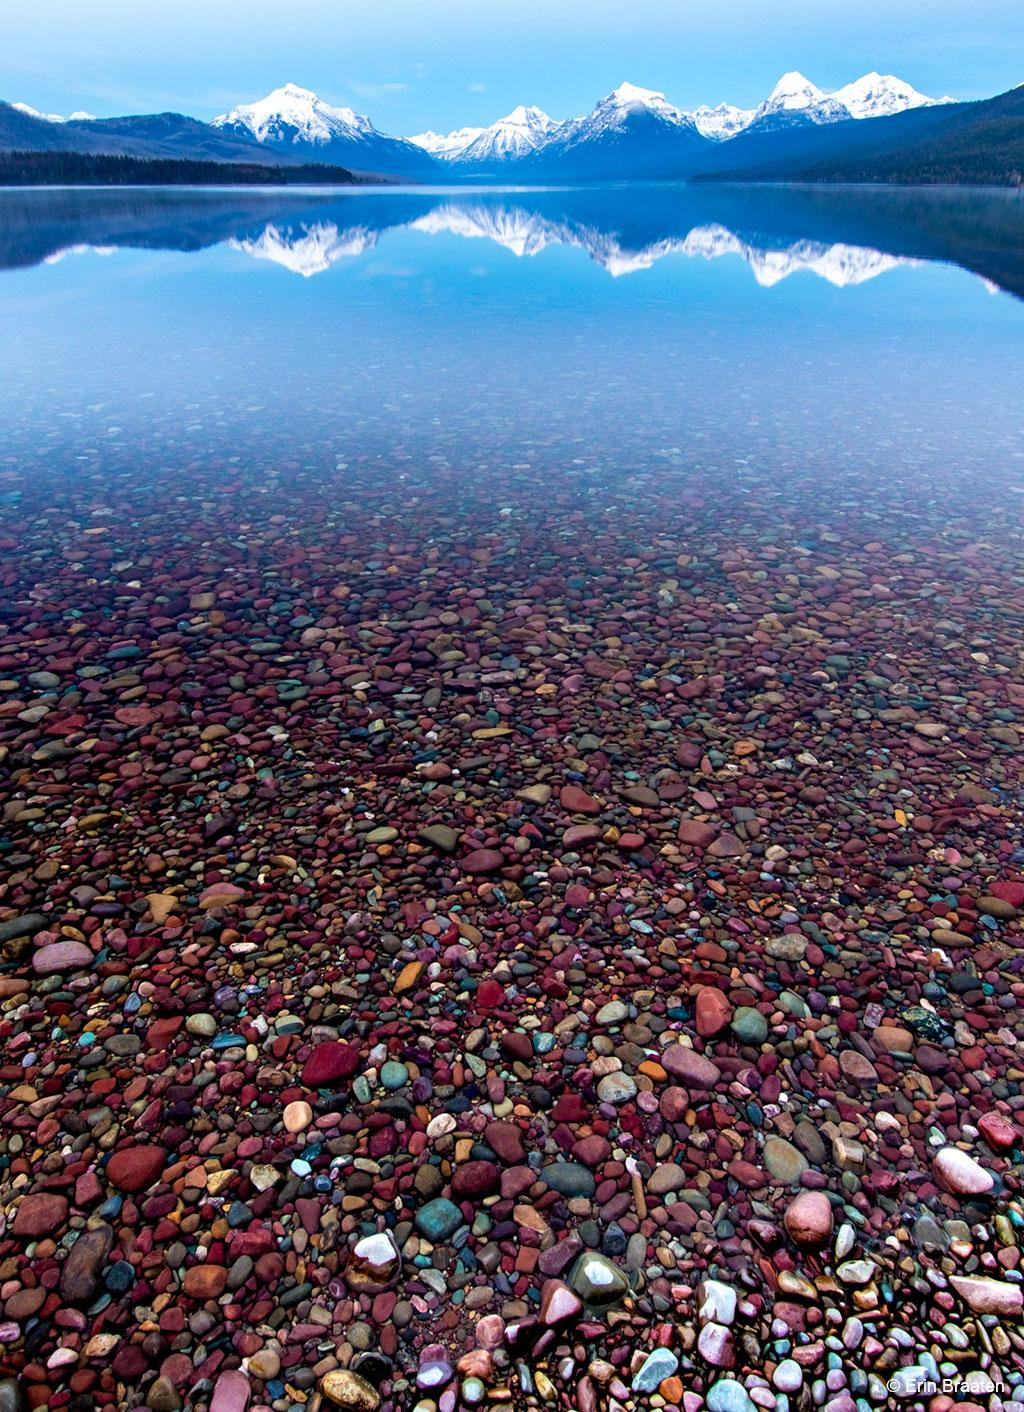 Today's Photo Of The Day is Lake McDonald by Erin Braaten. Location: Glacier National Park, Montana.